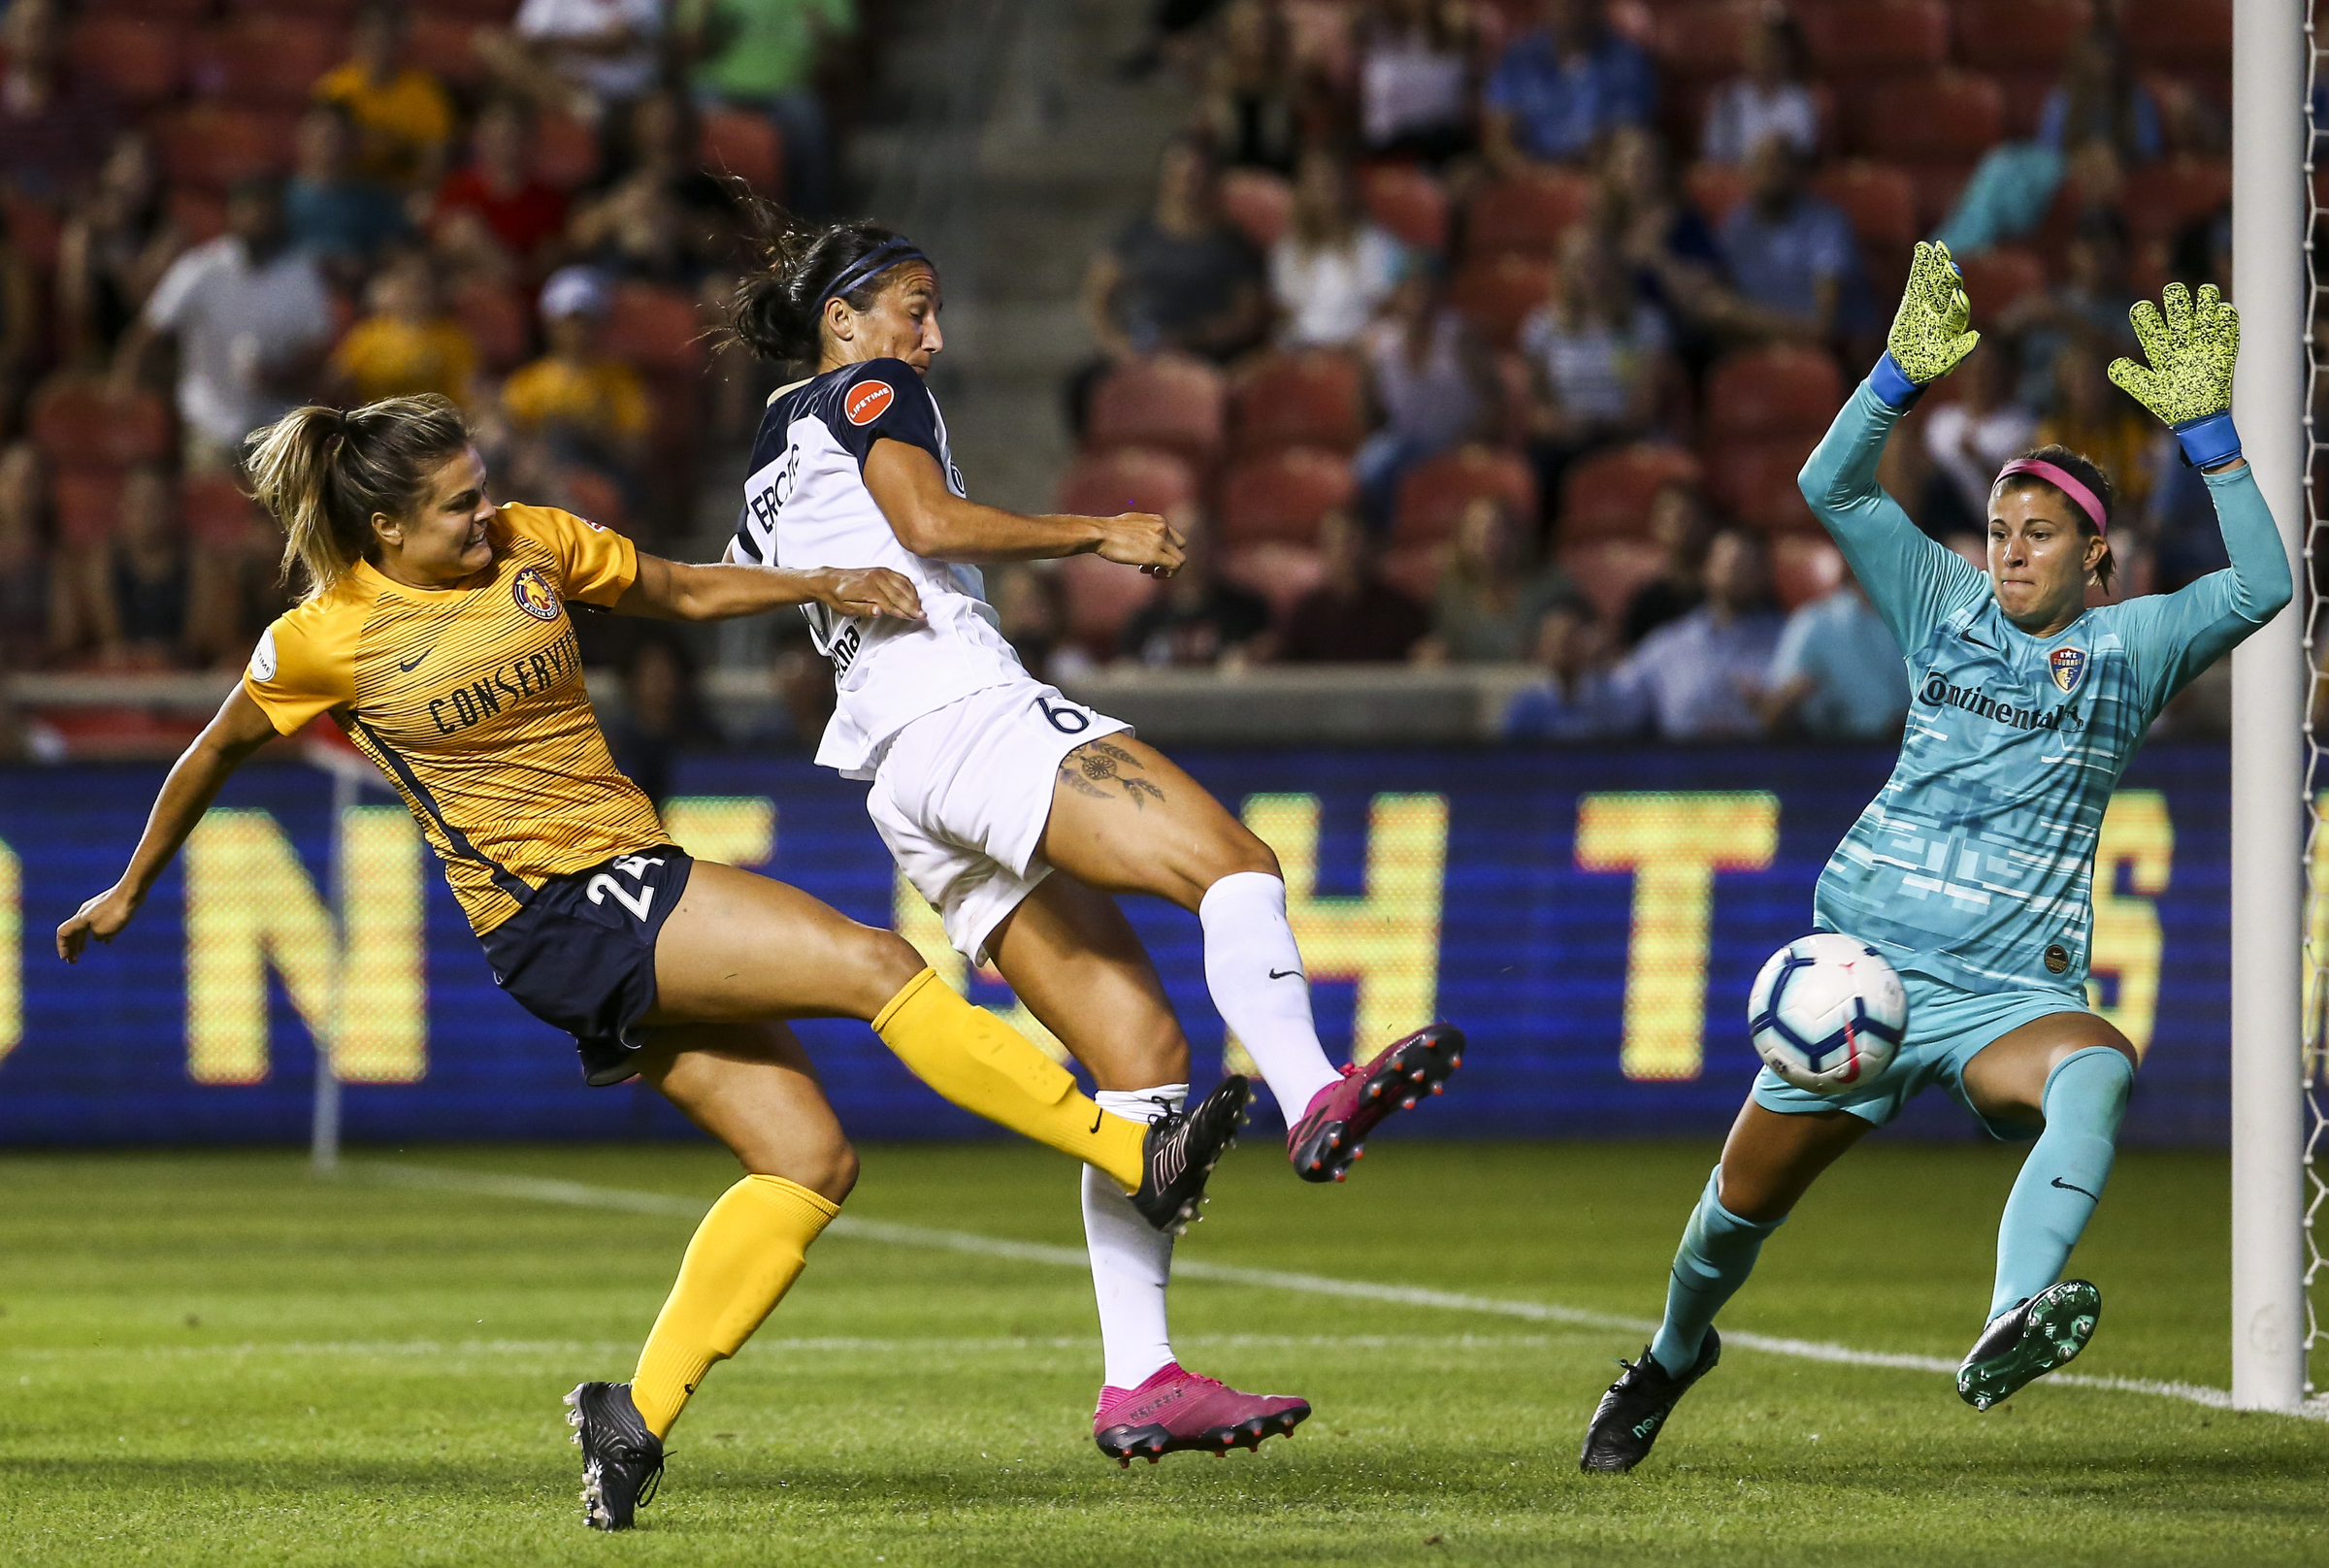 Utah Royals FC forward Katie Stengel (24) takes a shot around North Carolina Courage defender Abby Erceg (6) that is blocked by goalkeeper Stephanie Labbé (1) during the second half of a National Women's Soccer League match at Rio Tinto Stadium in Sandy o